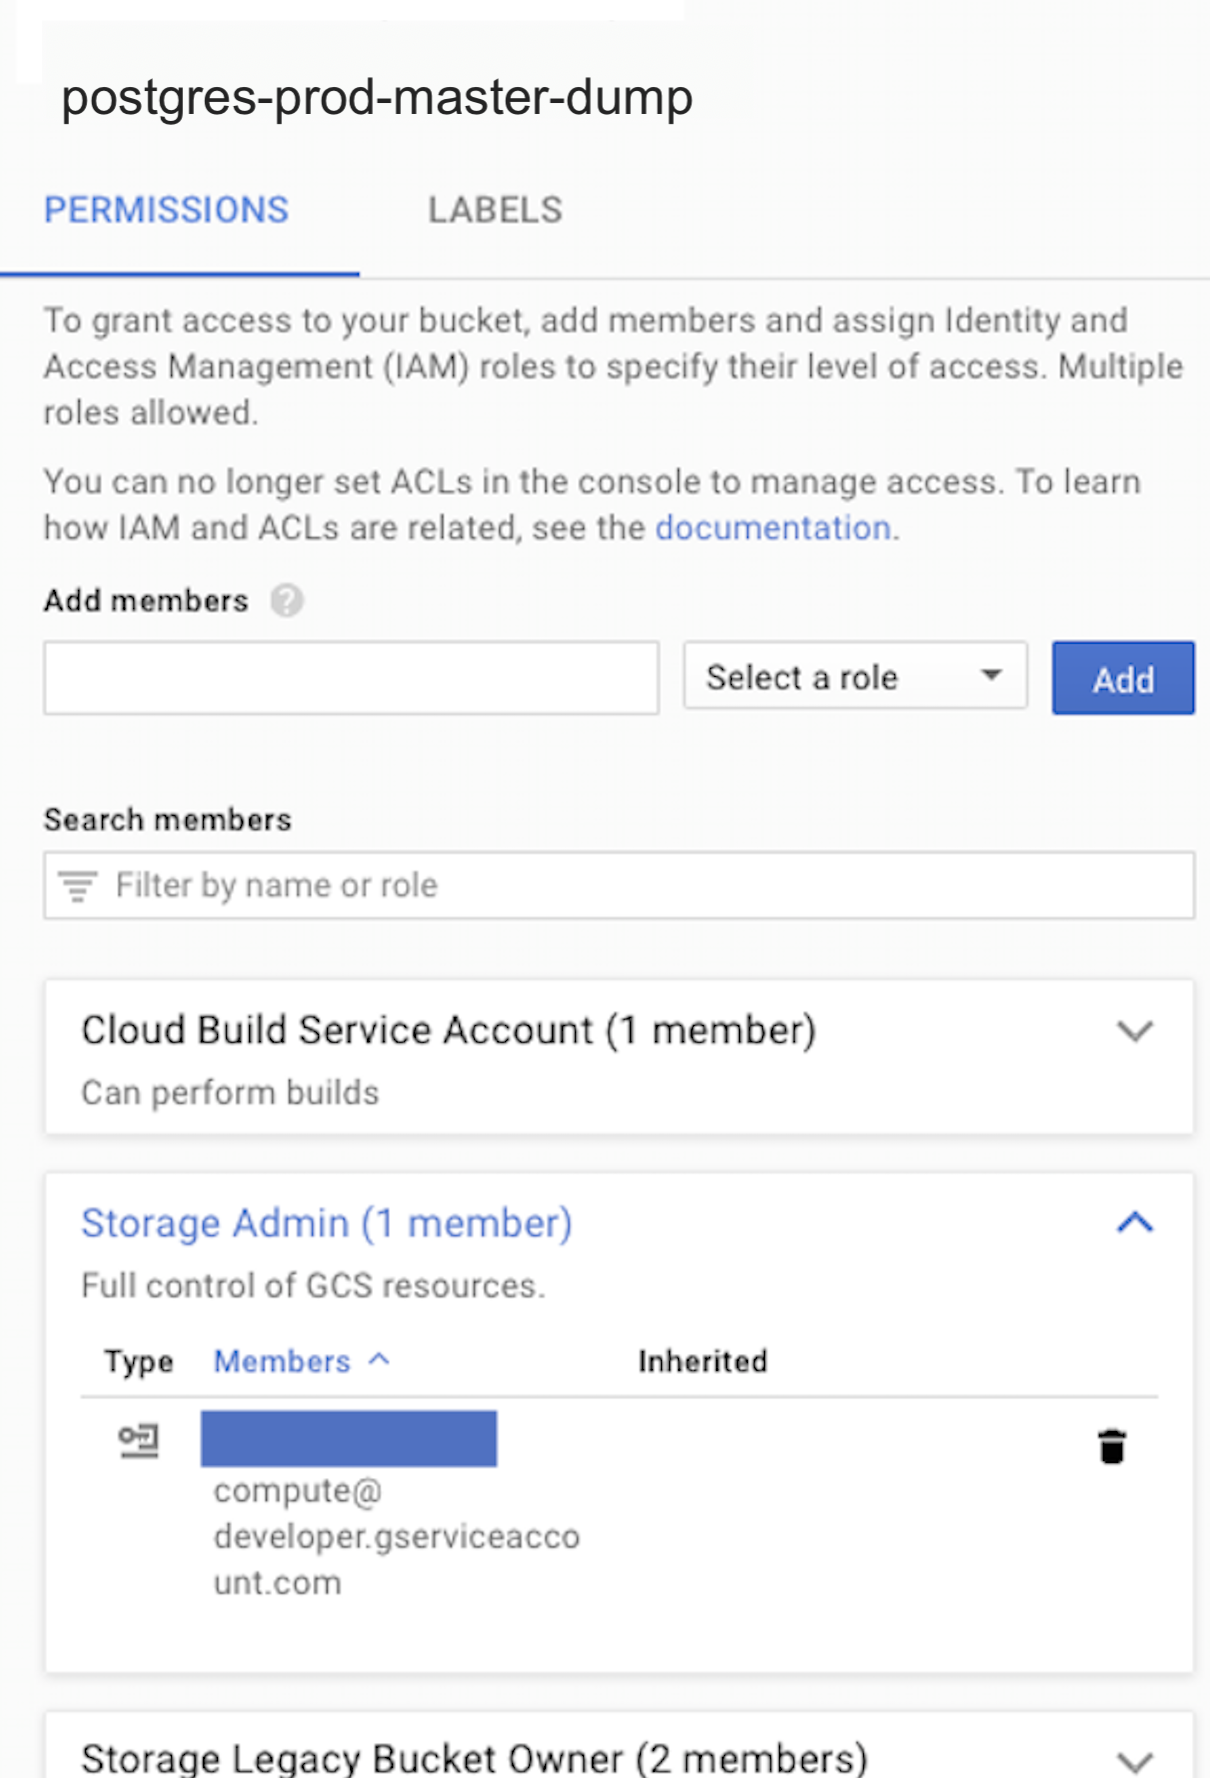 How to migrate PostgreSQL databases to Google Cloud SQL?